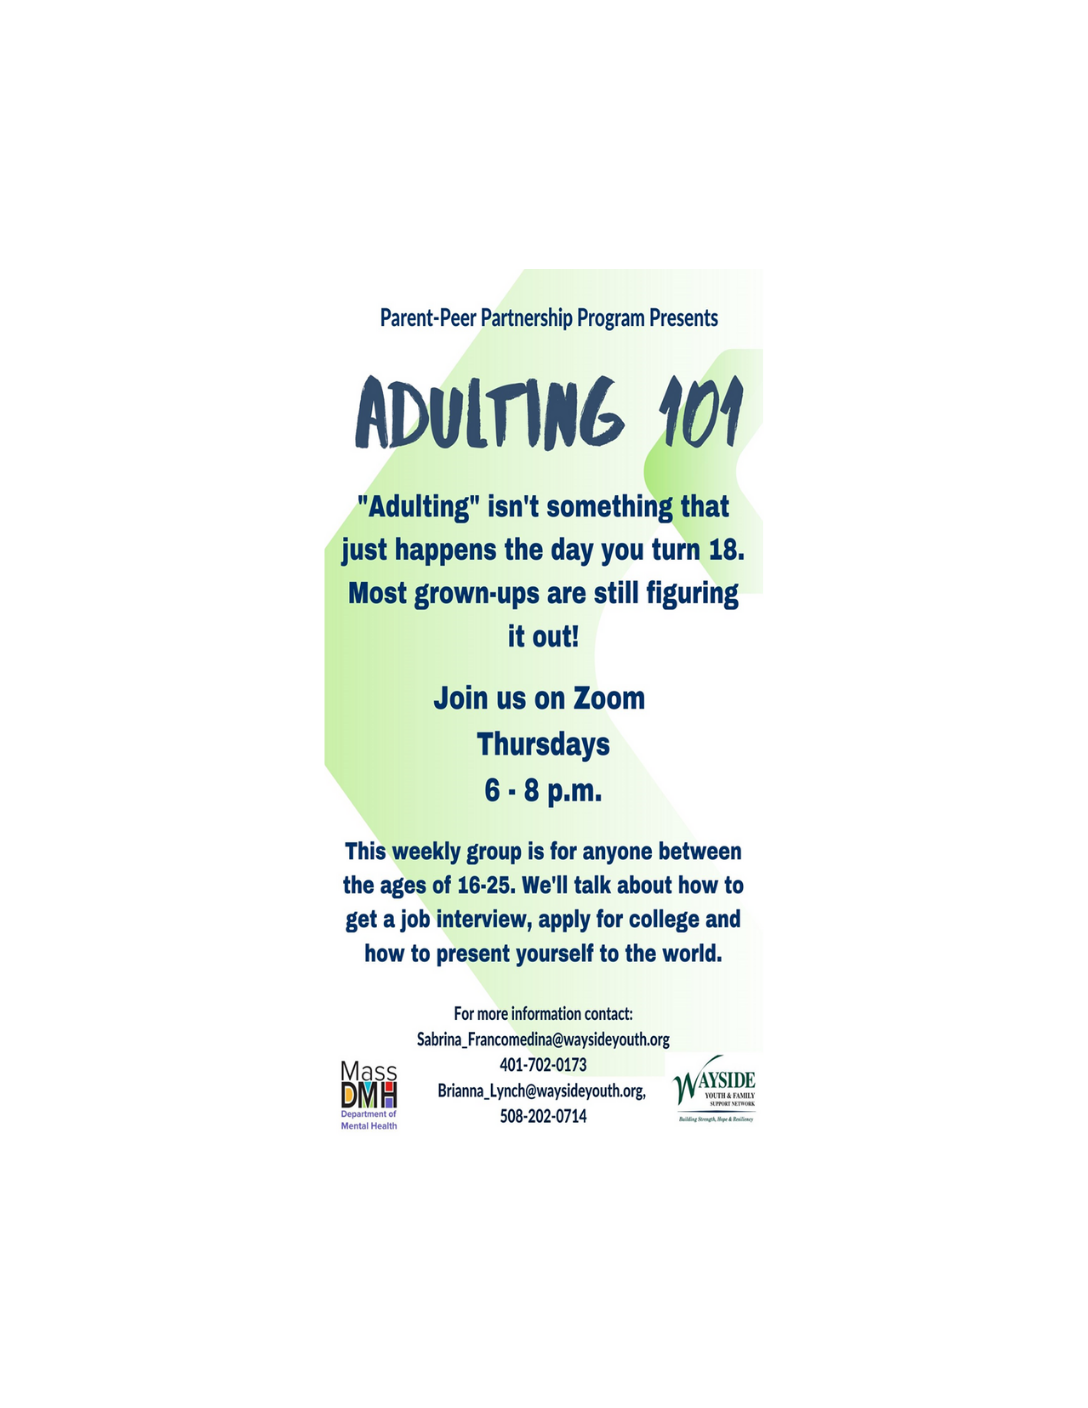 Adulting 101: Wayside Youth & Family Support Network (Virtual Young Adult Support Group 16-25) Canton